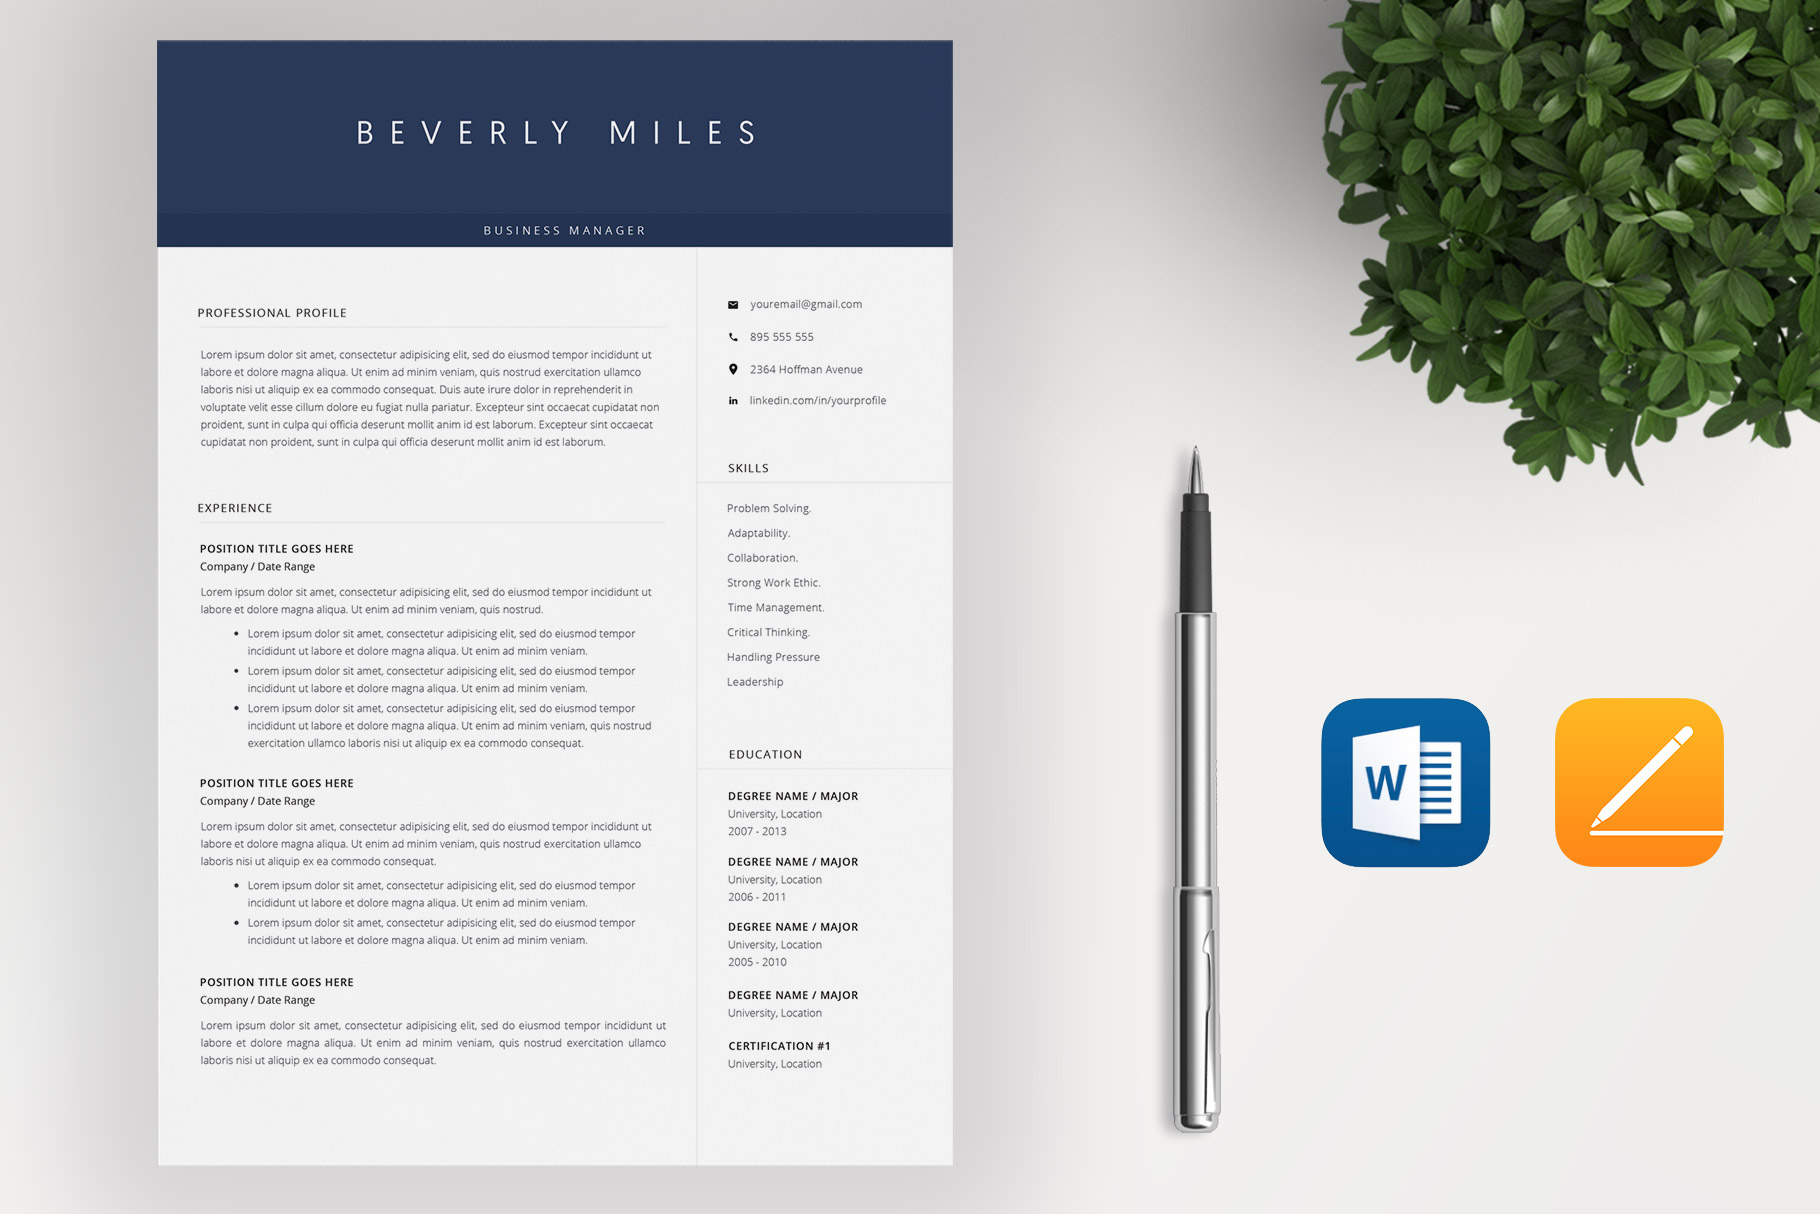 Resume Template and Cover Letter | CV template example image 2